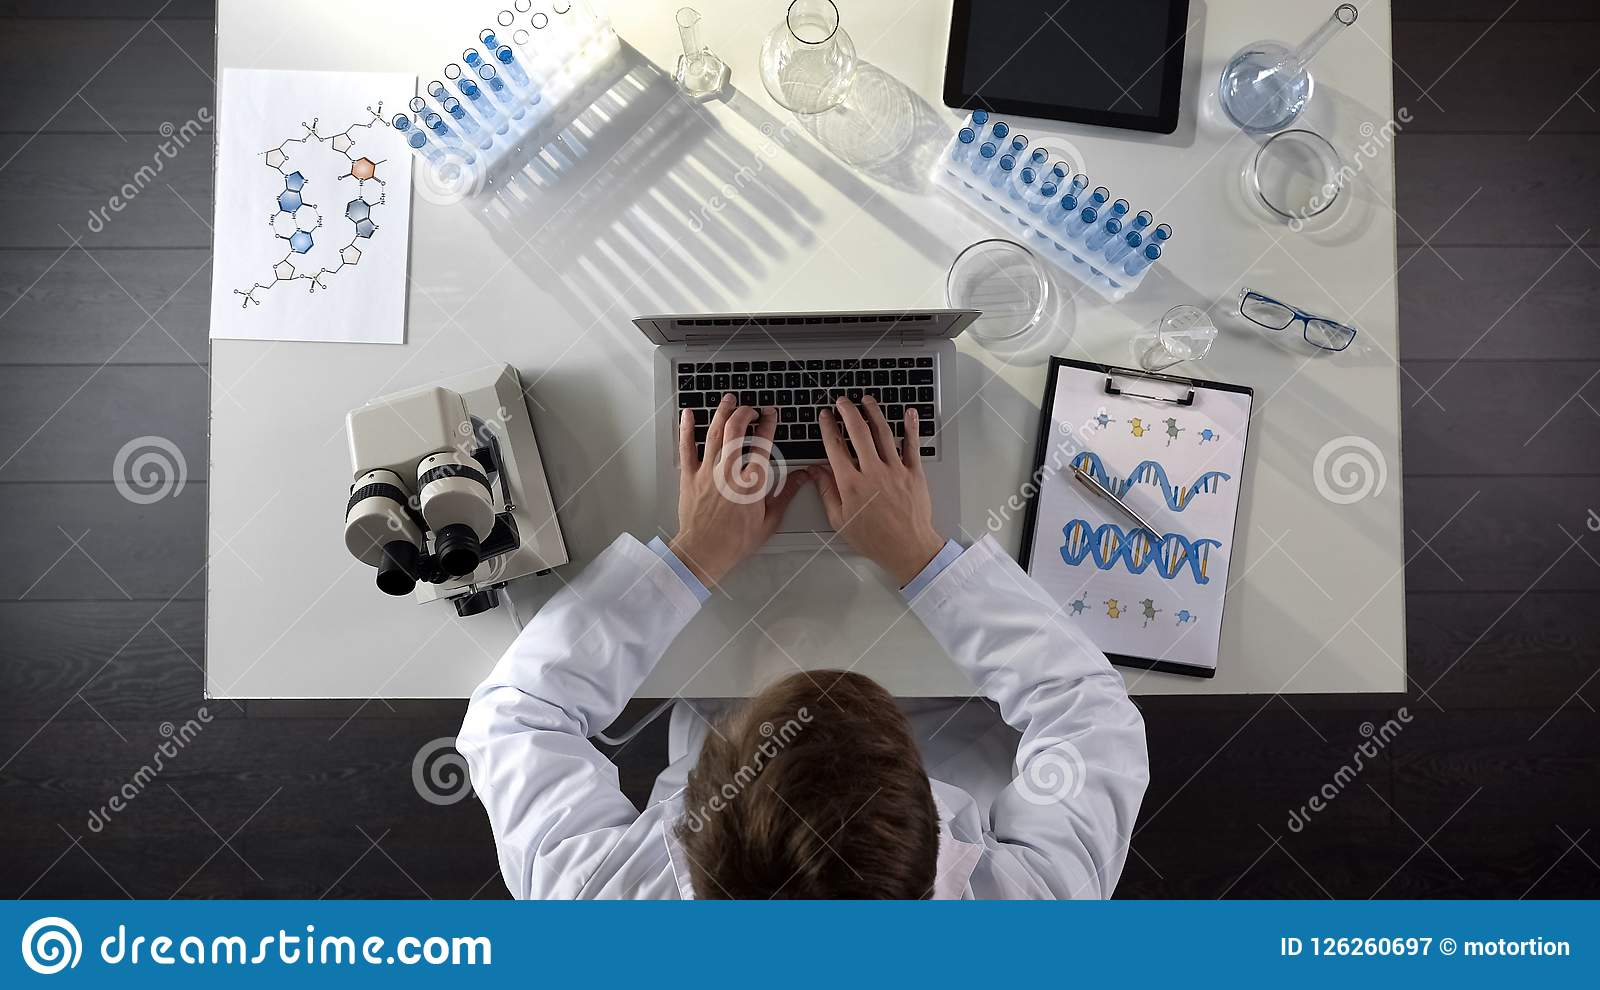 Genetics scientist conducting medical studies of DNA, typing on laptop, top view